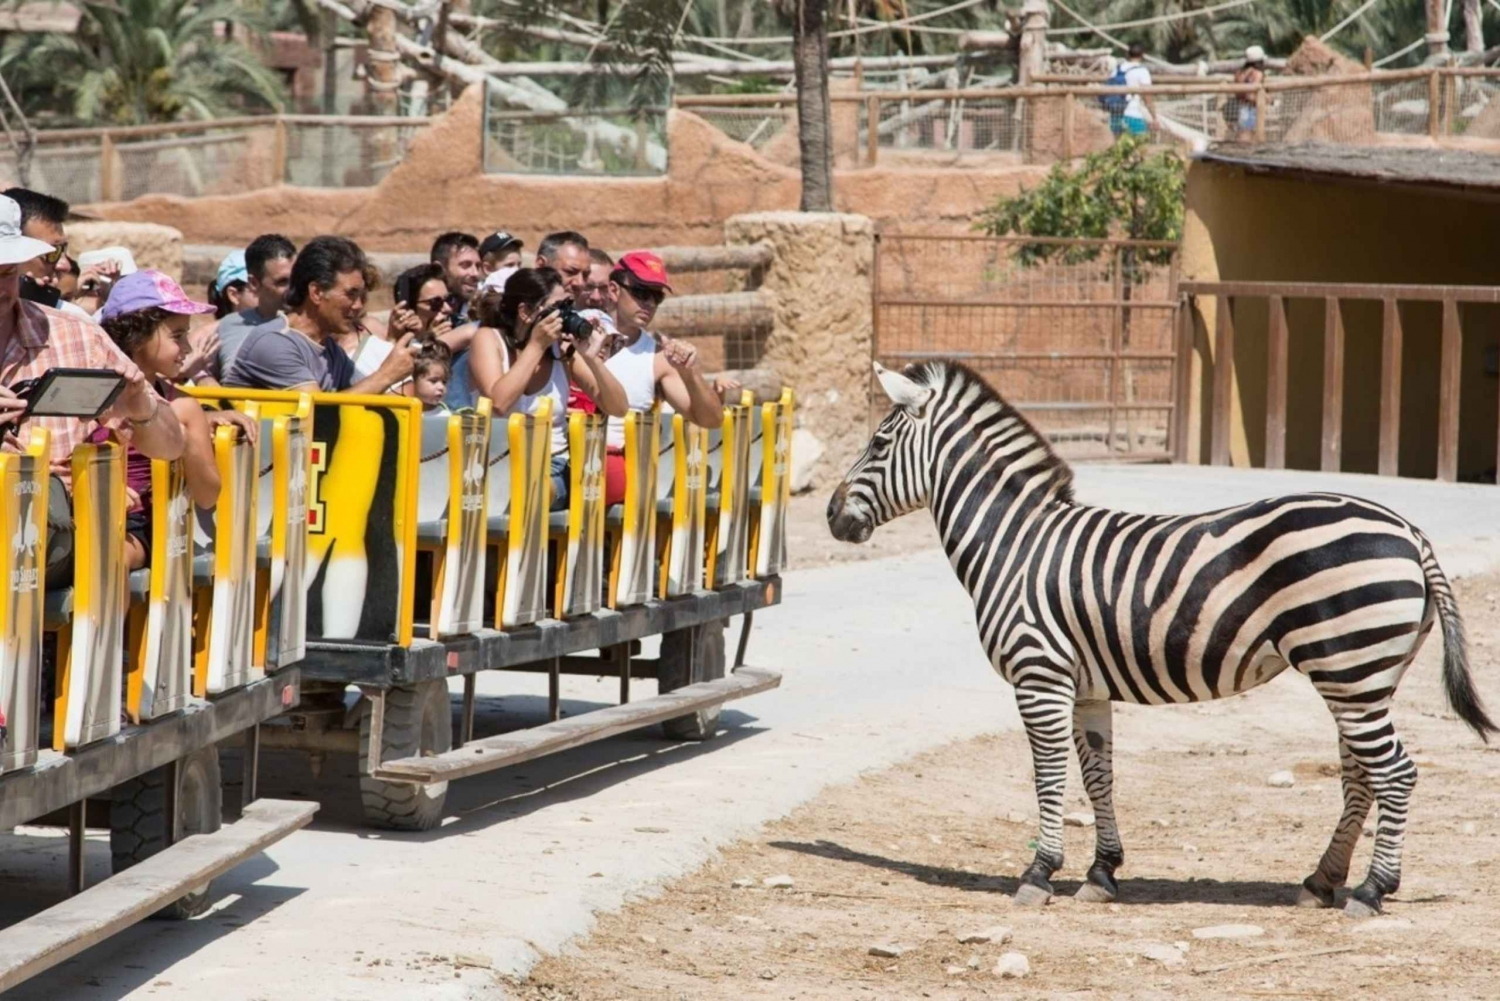 Day Trip to Rio Safari Elche from Benidorm